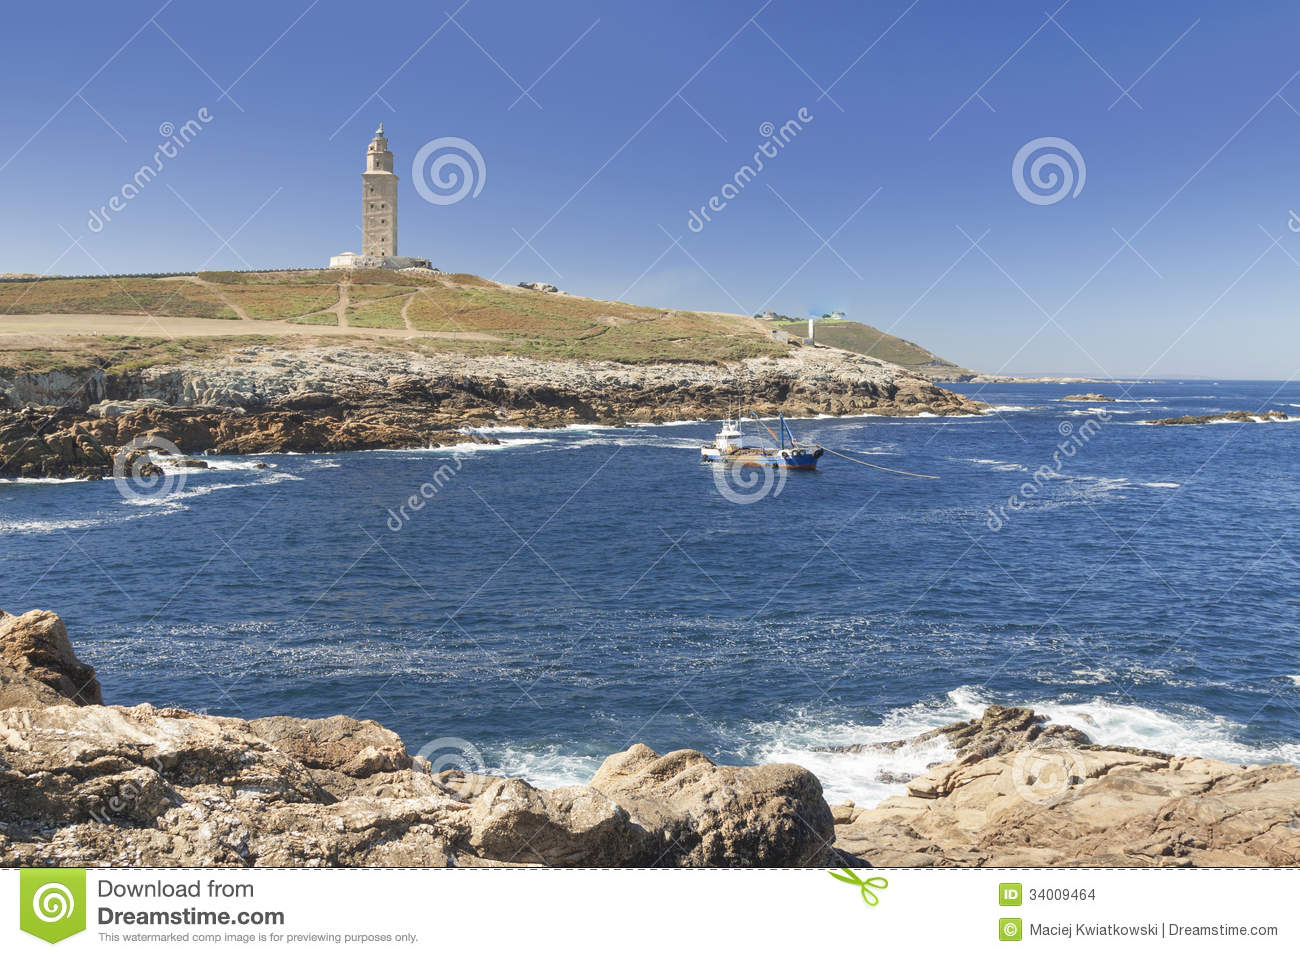 Spain, Galicia, A Coruna, Hercules Tower Lighthouse Stock Images - Image: 34009464